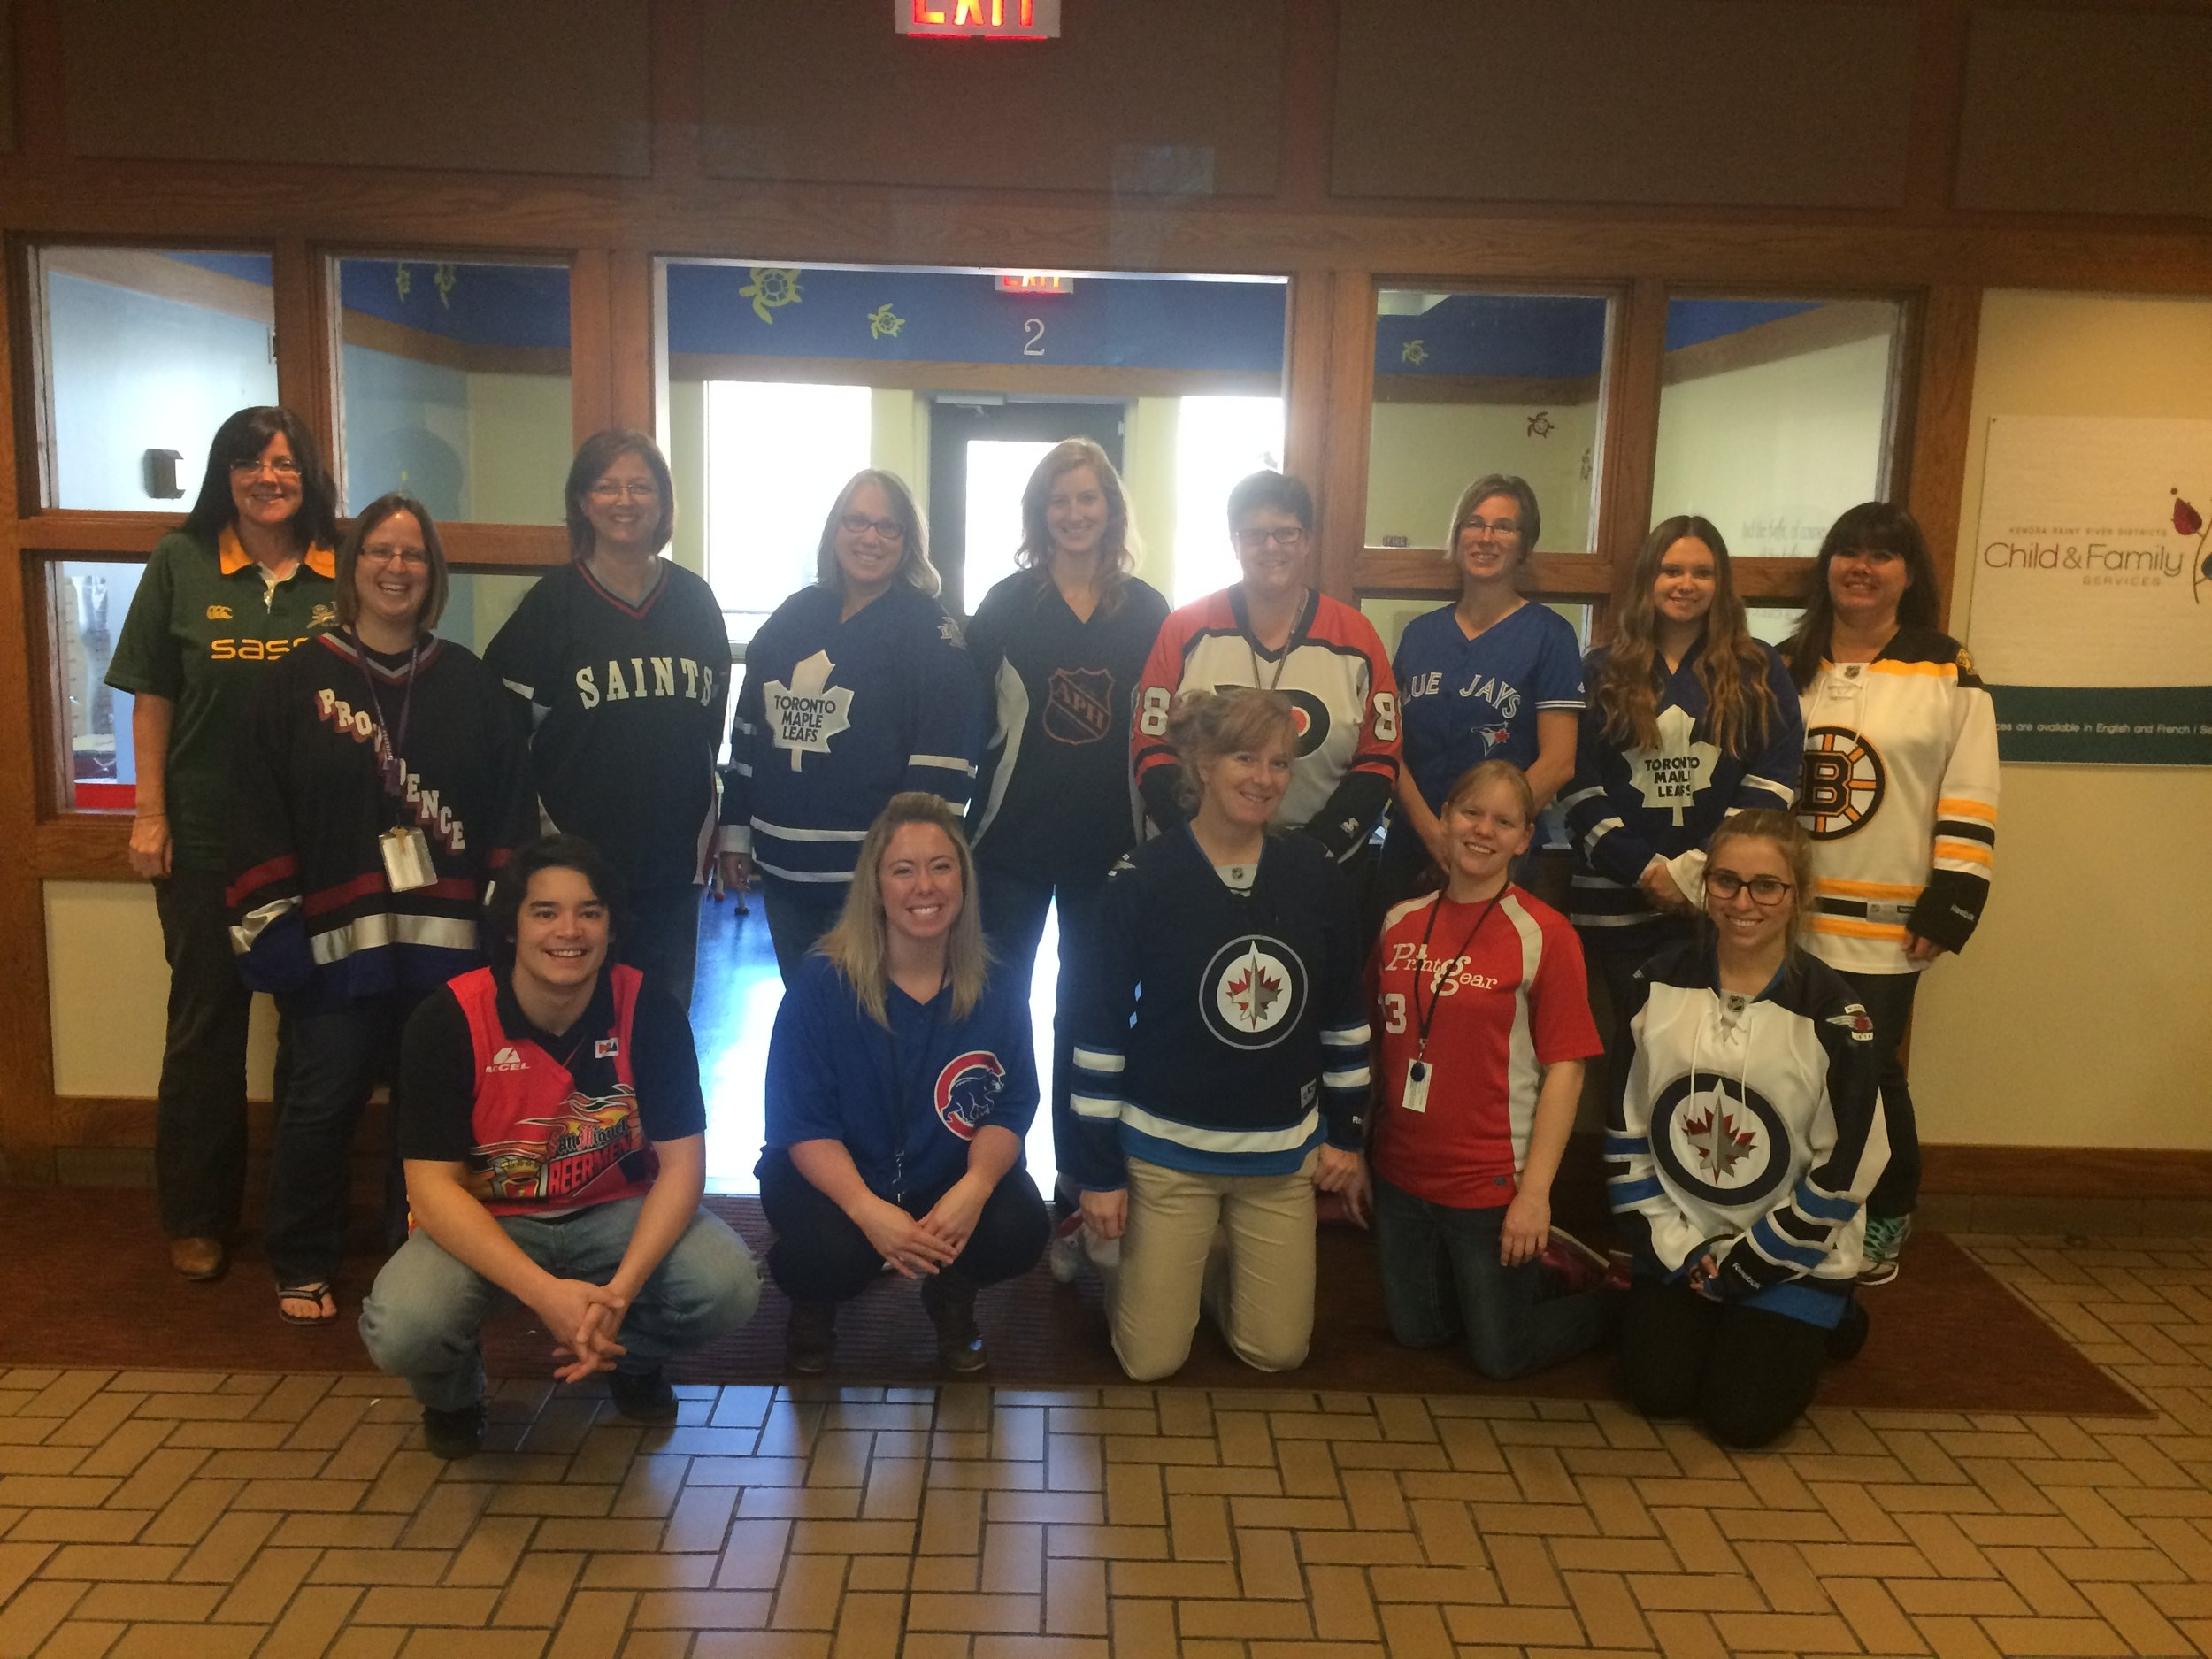 Jersey Day 2018